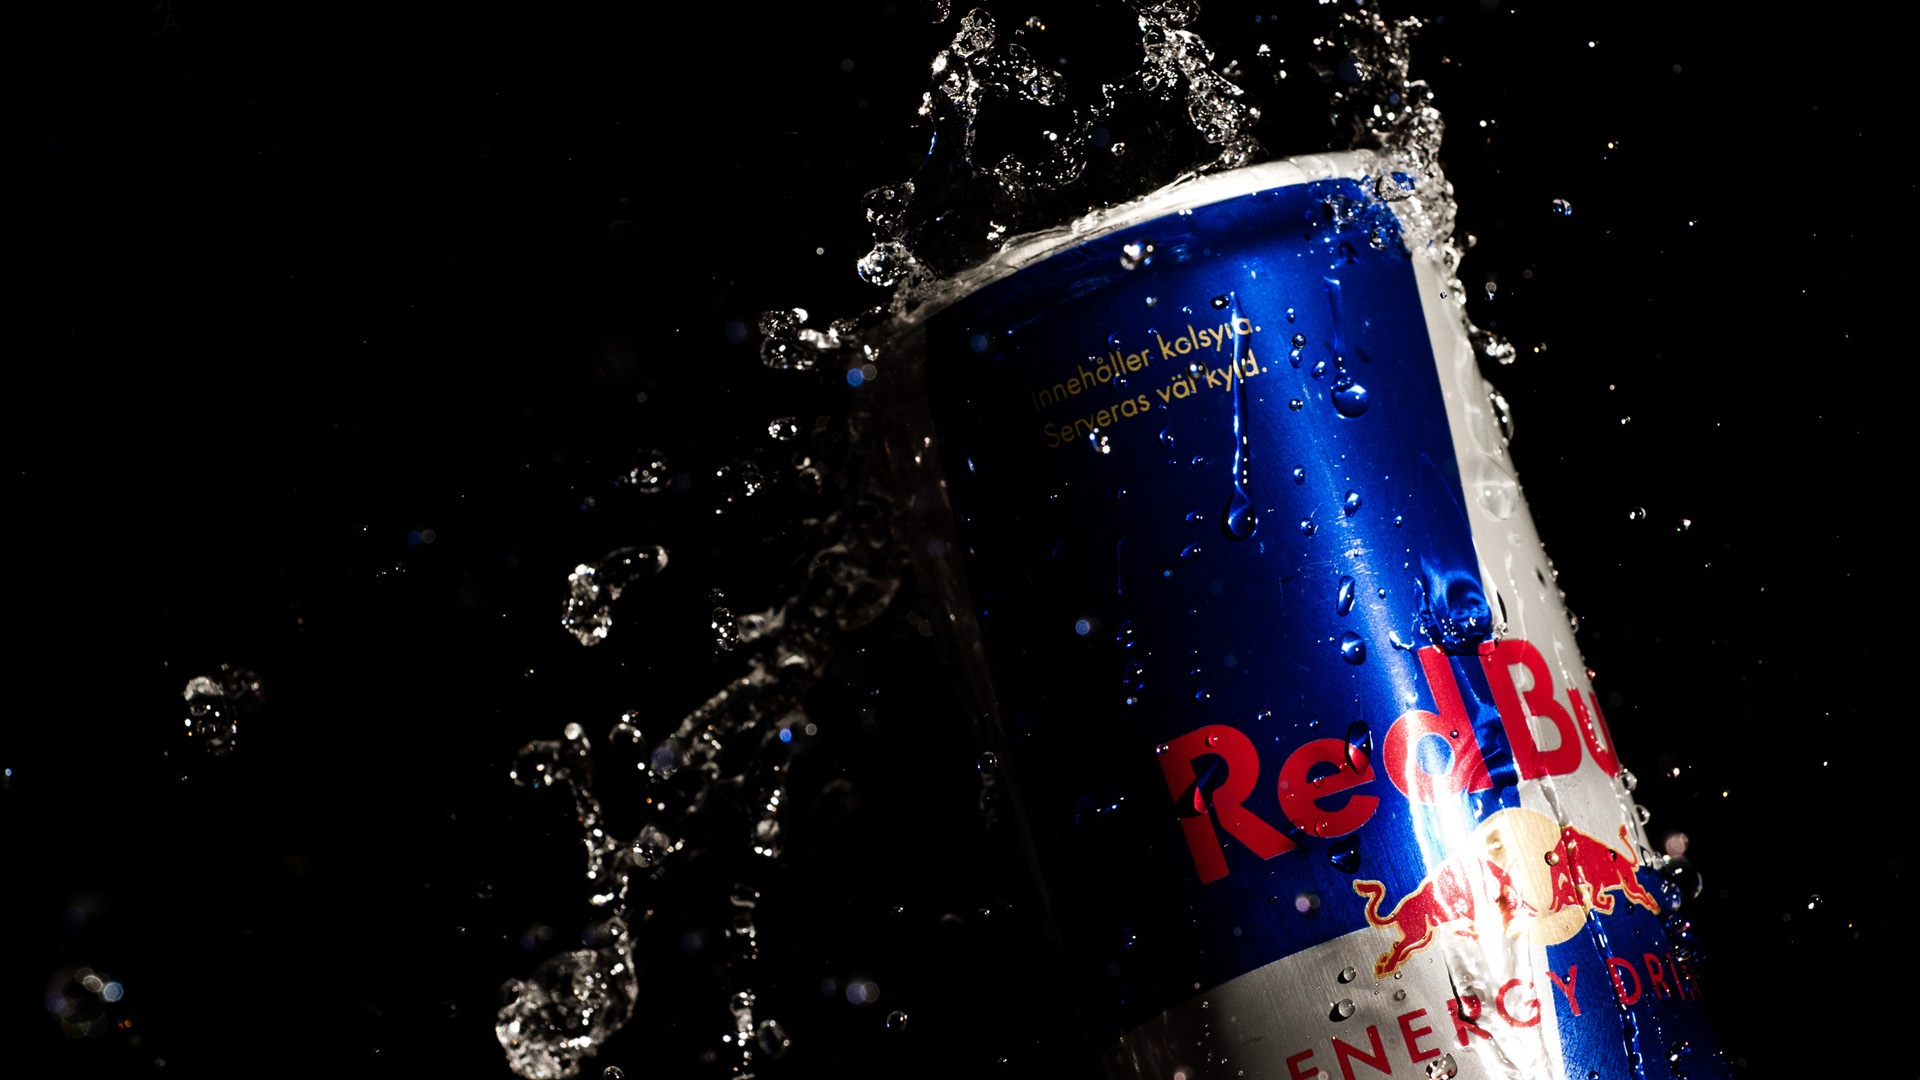 Download Red Bull HD:5454-ISQ Backgrounds, BsnSCB